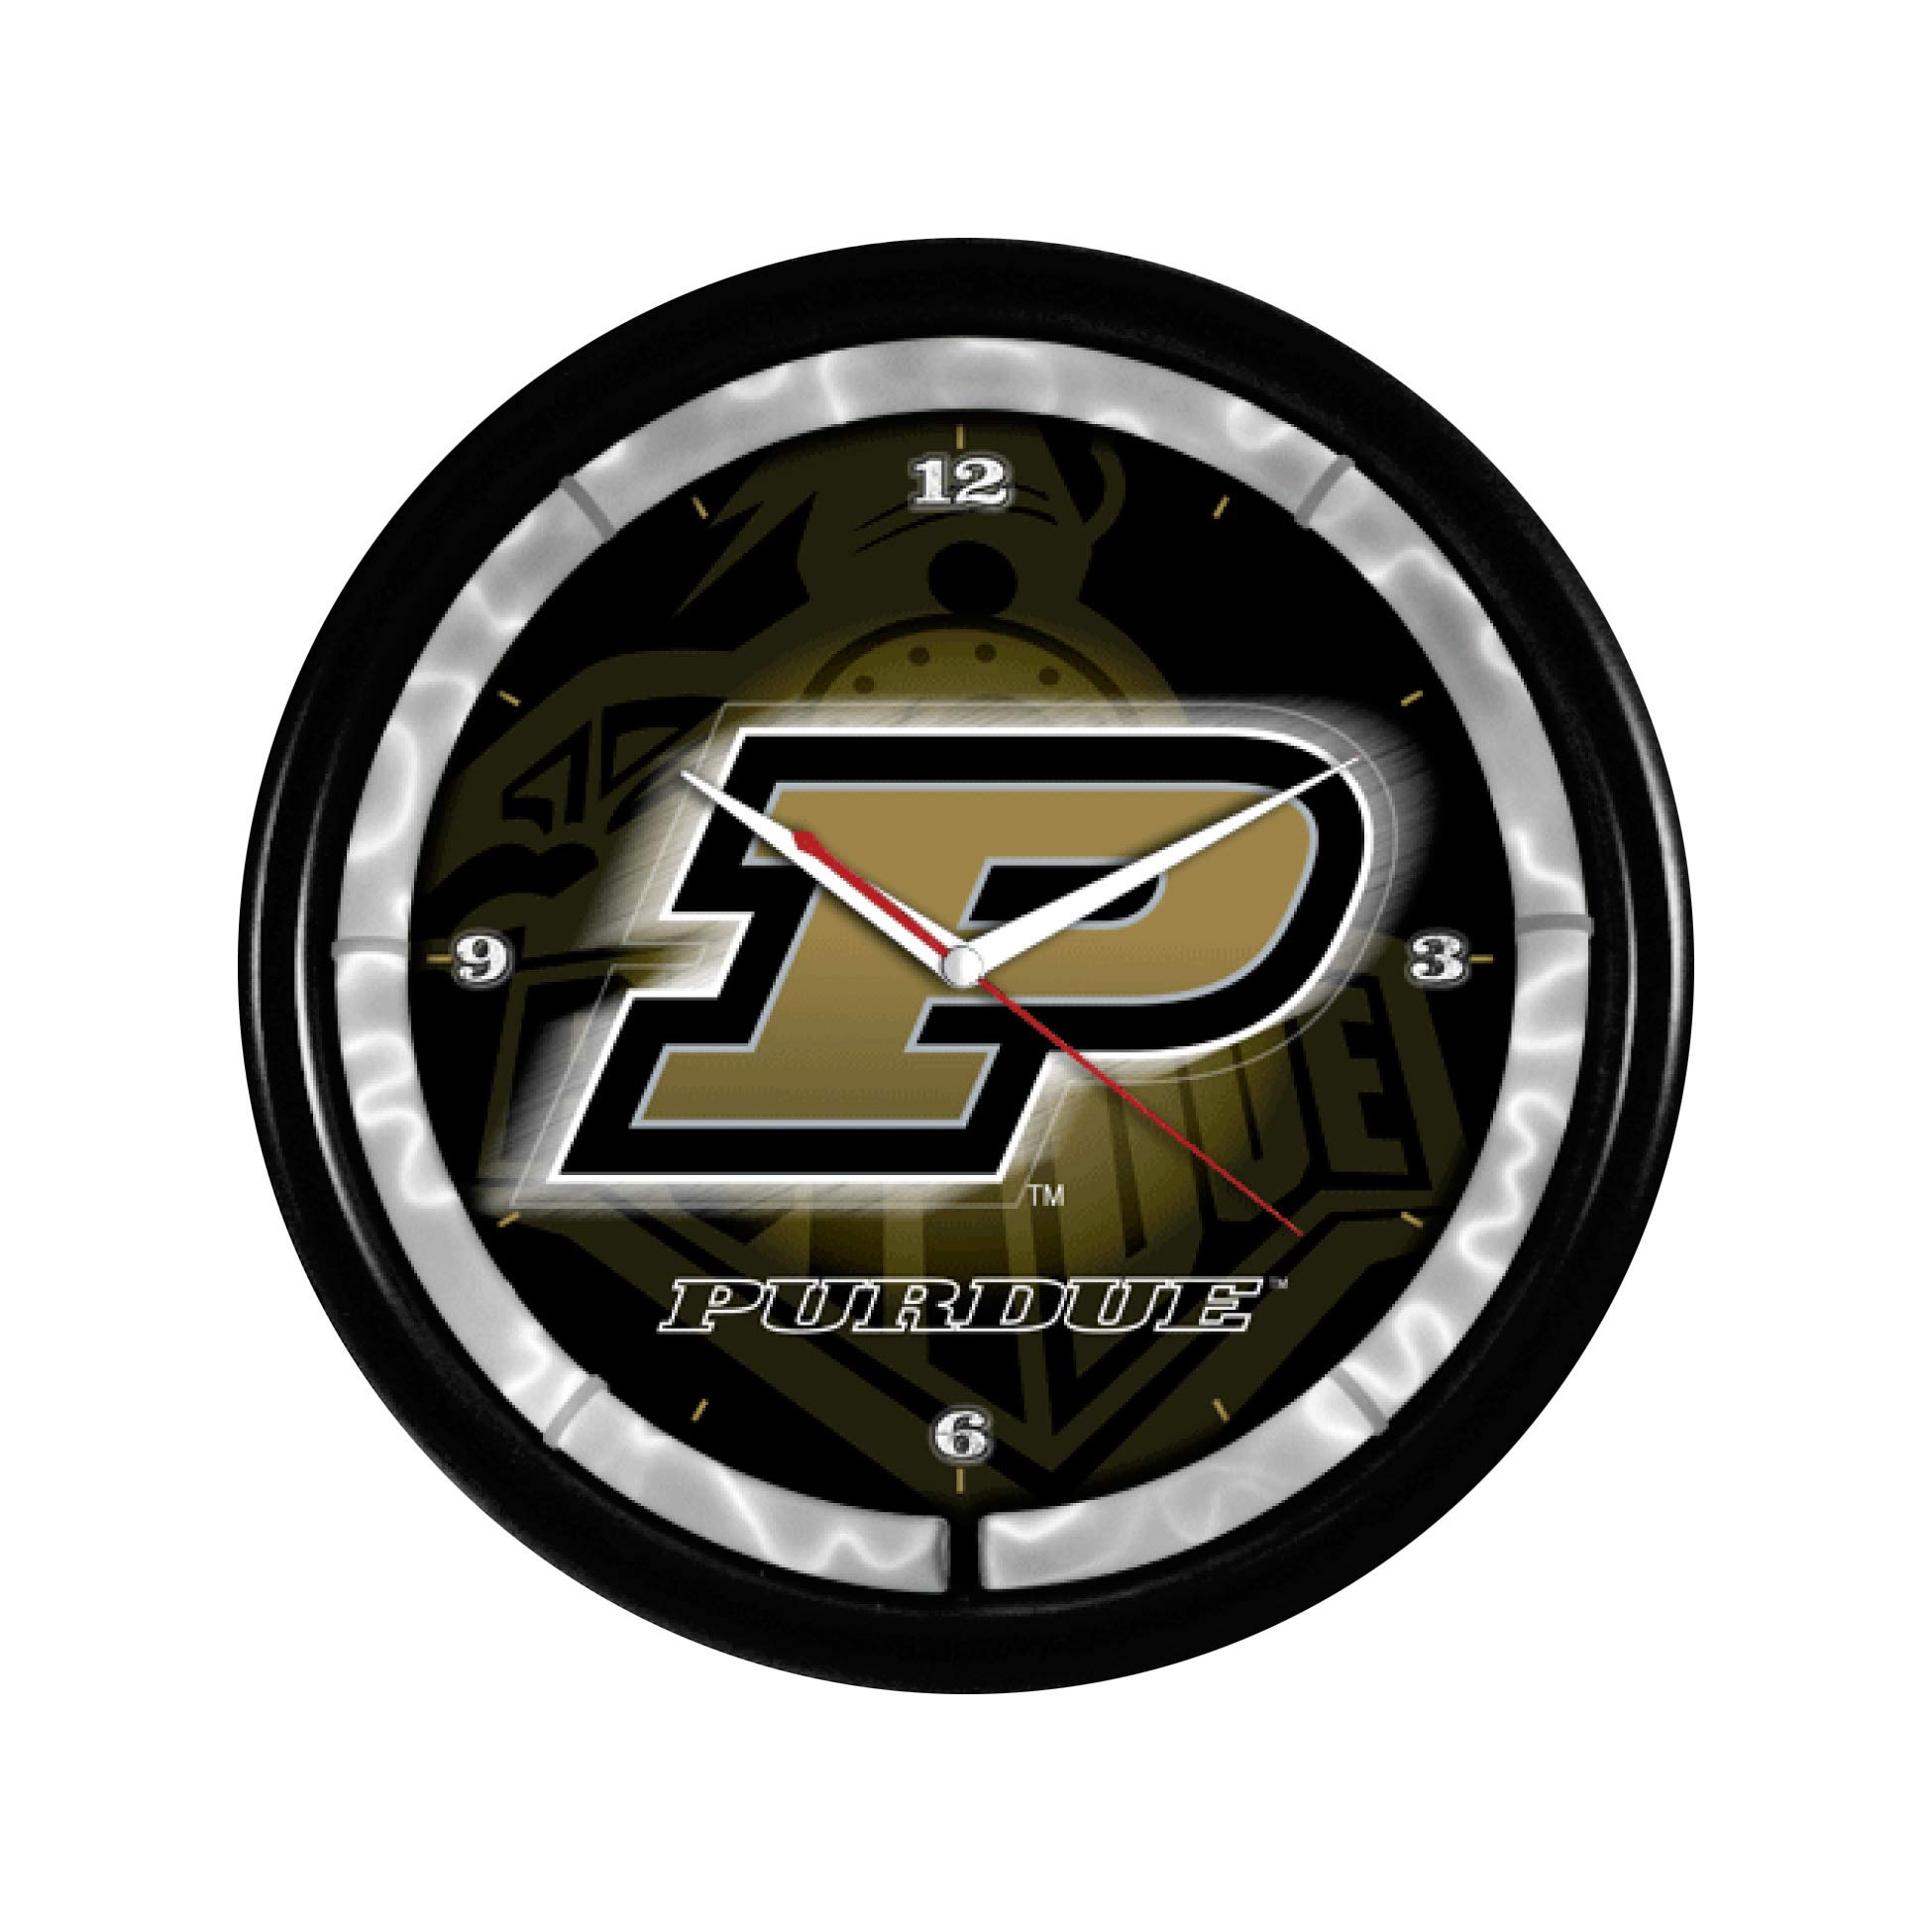 Authentic Street Signs NCAA College Team Plasma Clock (Purdue Boilermakers) by Authentic Street Signs